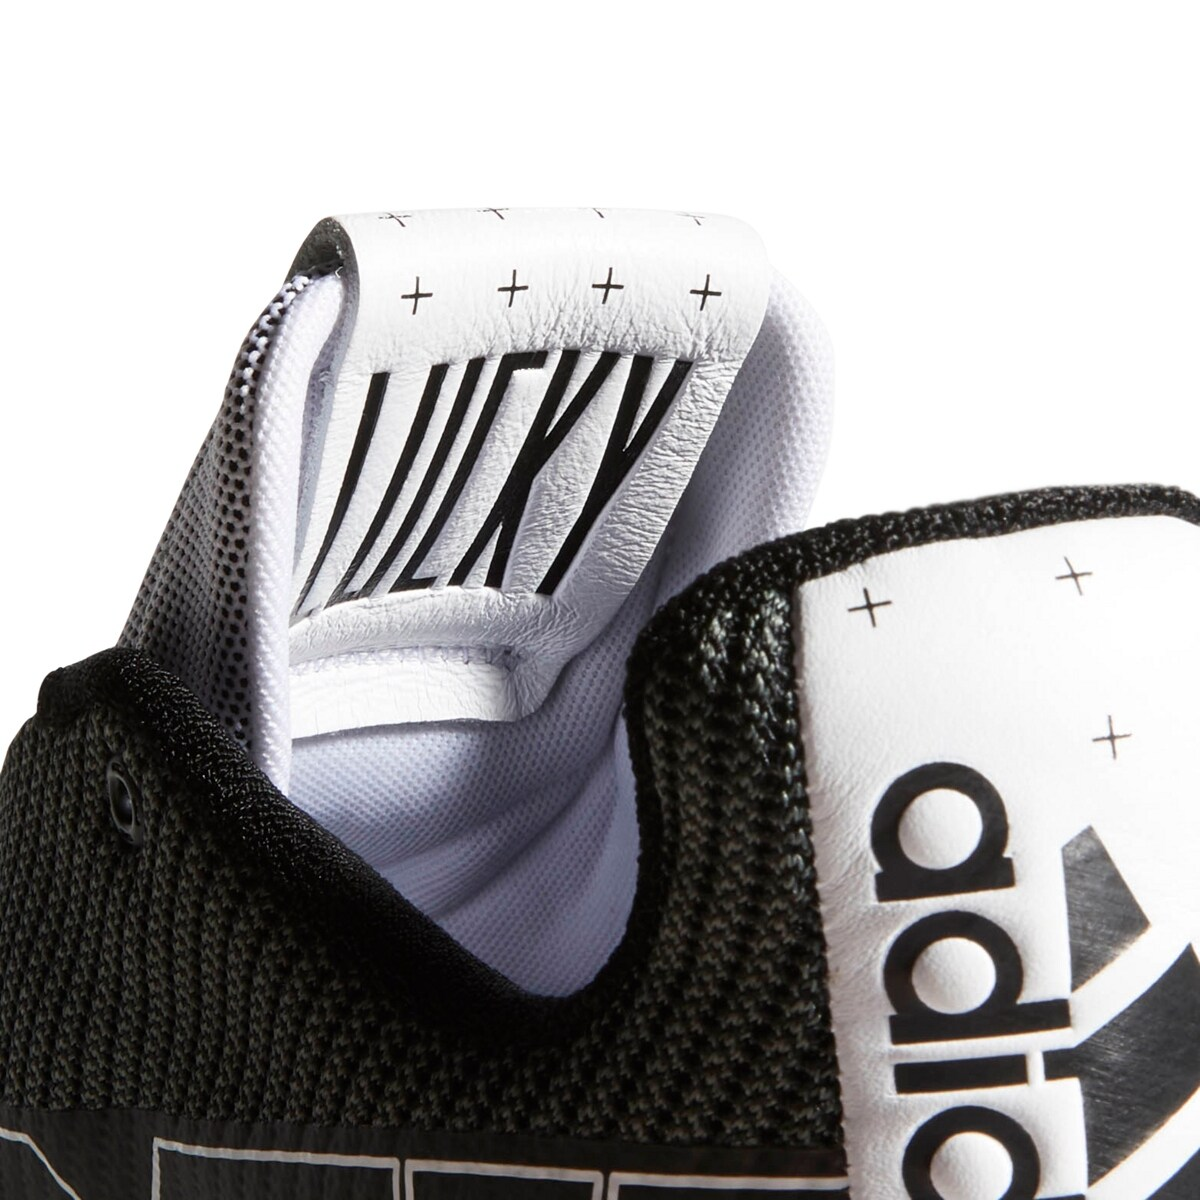 6ec51a13151 Shop Adidas Mens Harden Vol.3 Boost Basketball Shoes - Free Shipping Today  - Overstock - 27296112